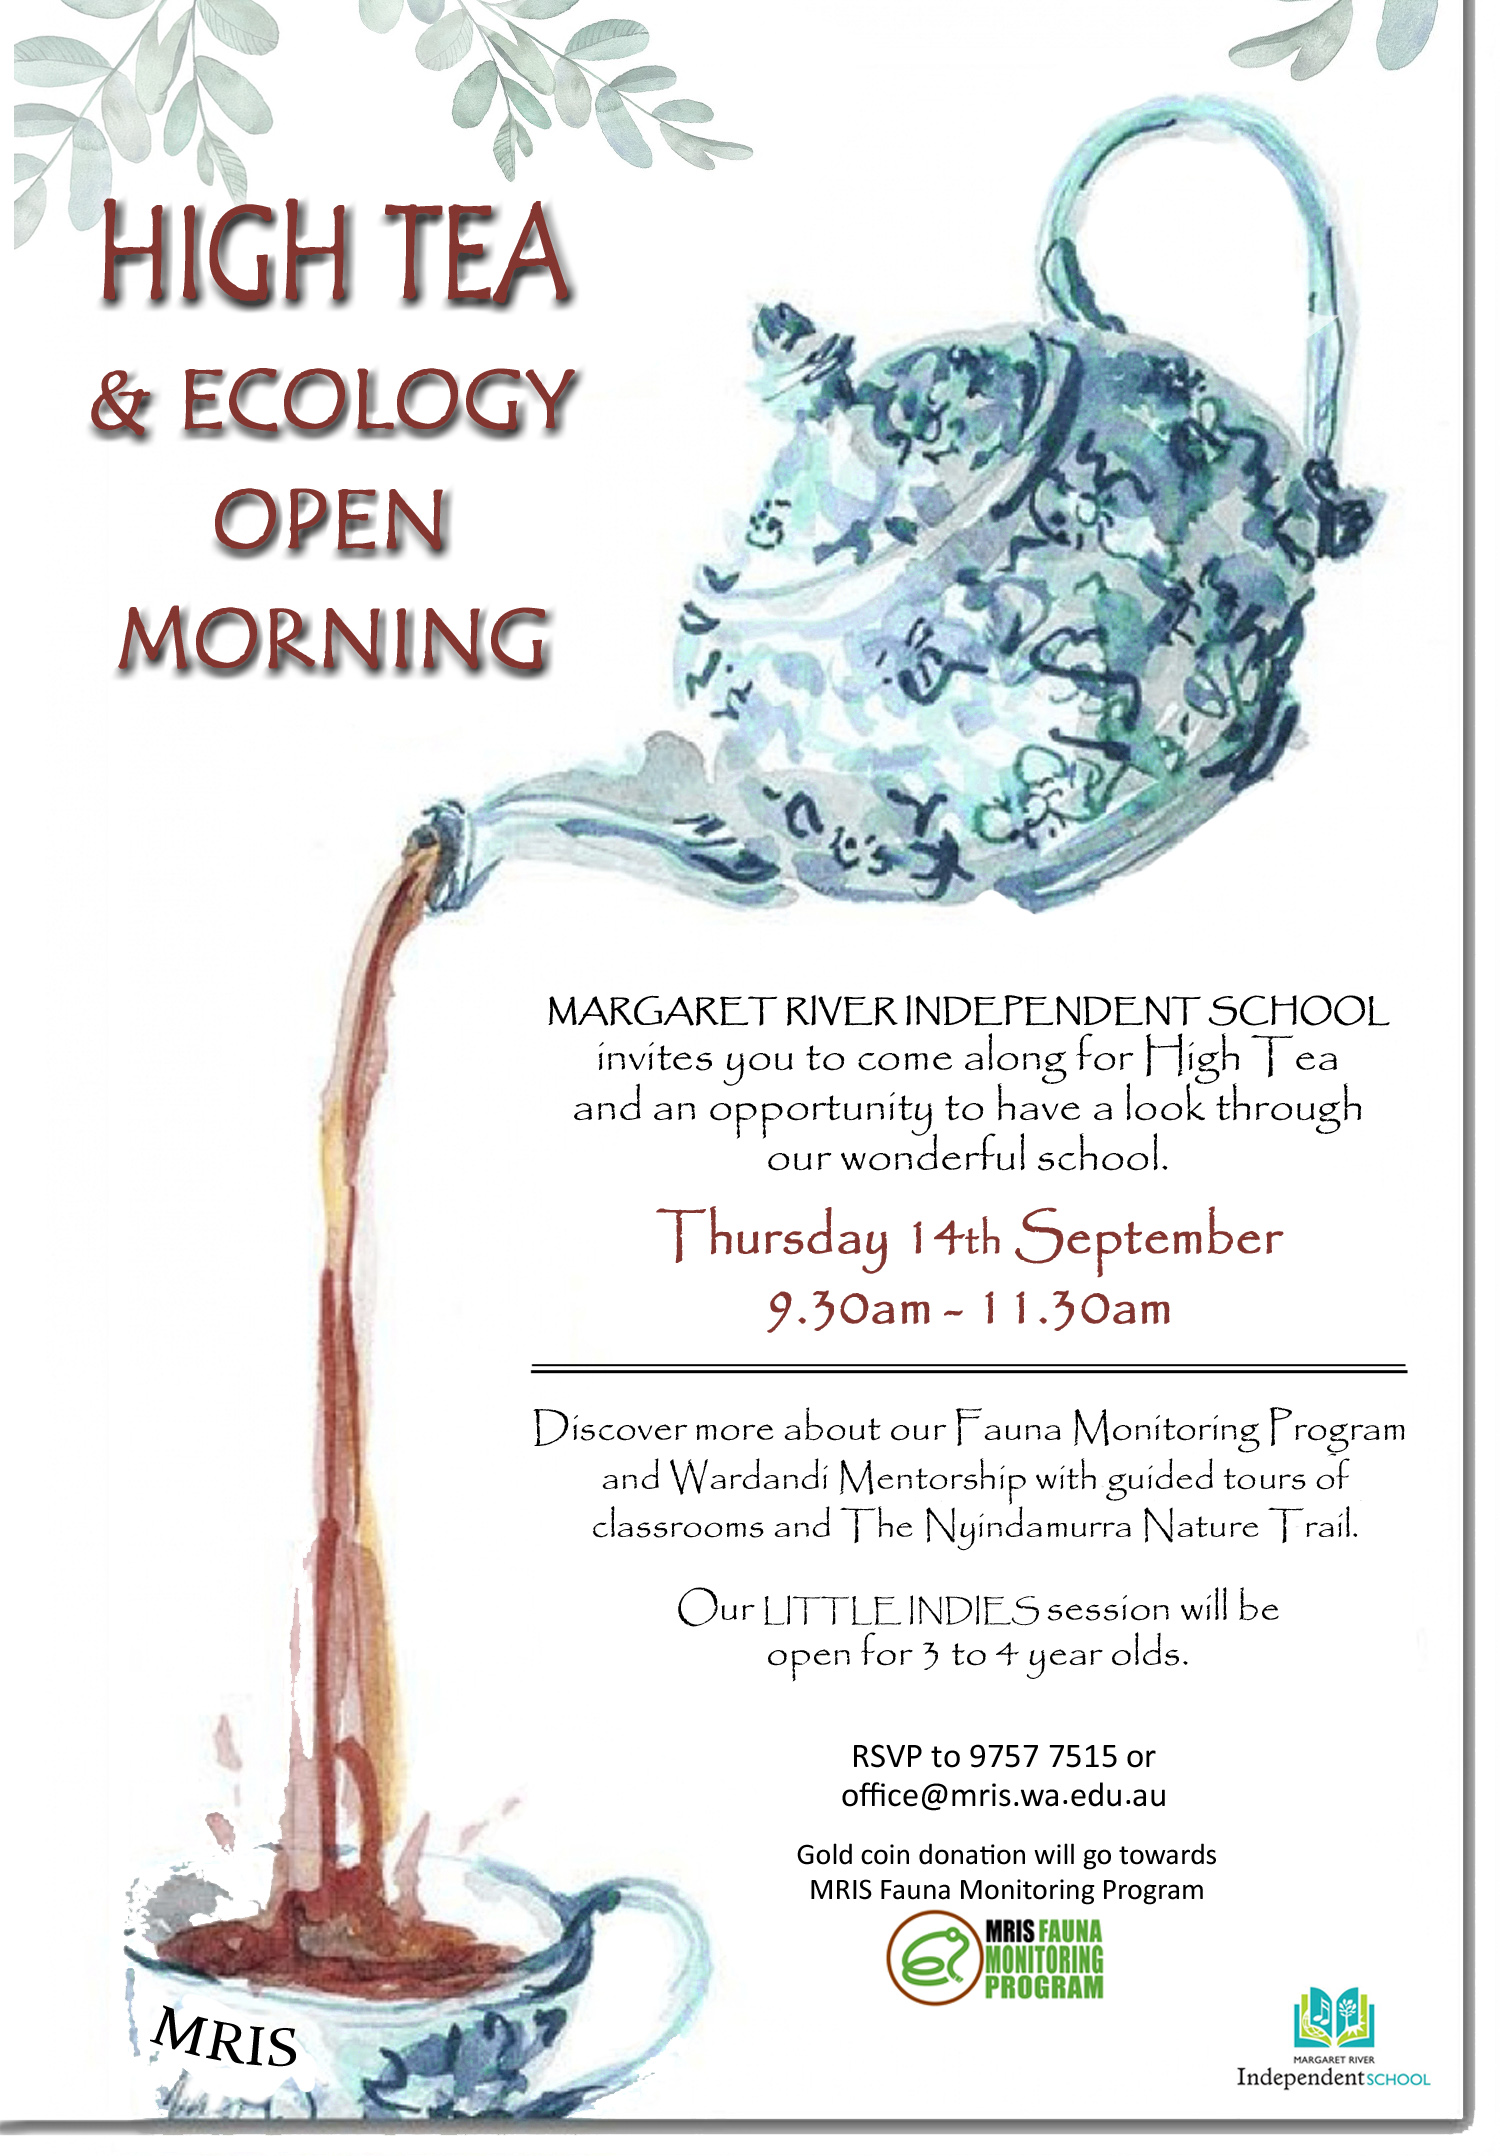 High Tea And Ecology Open Morning 2017 Margaret River